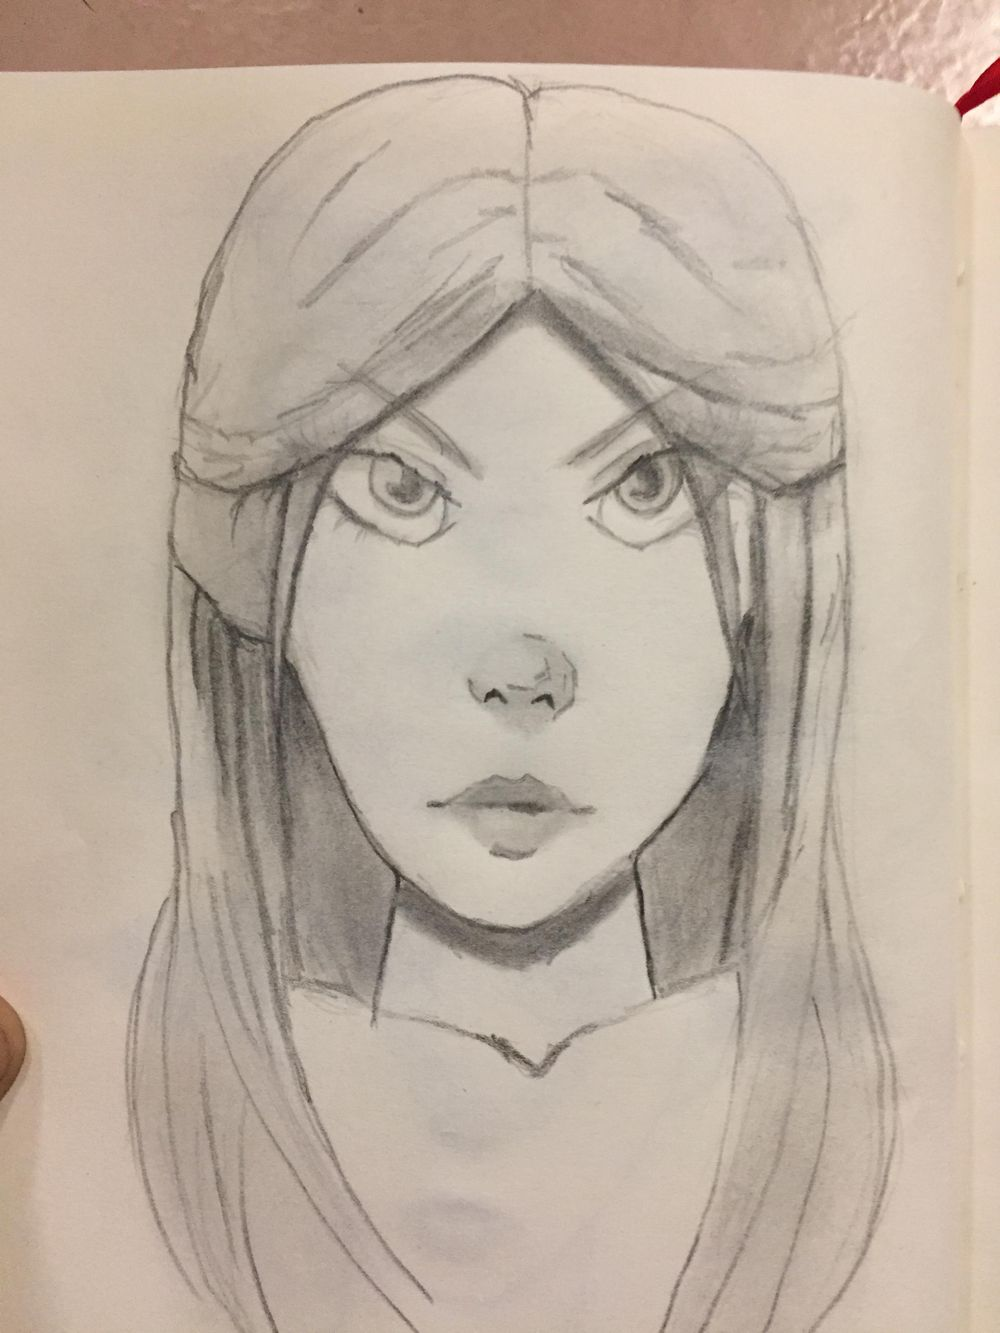 female char - image 7 - student project